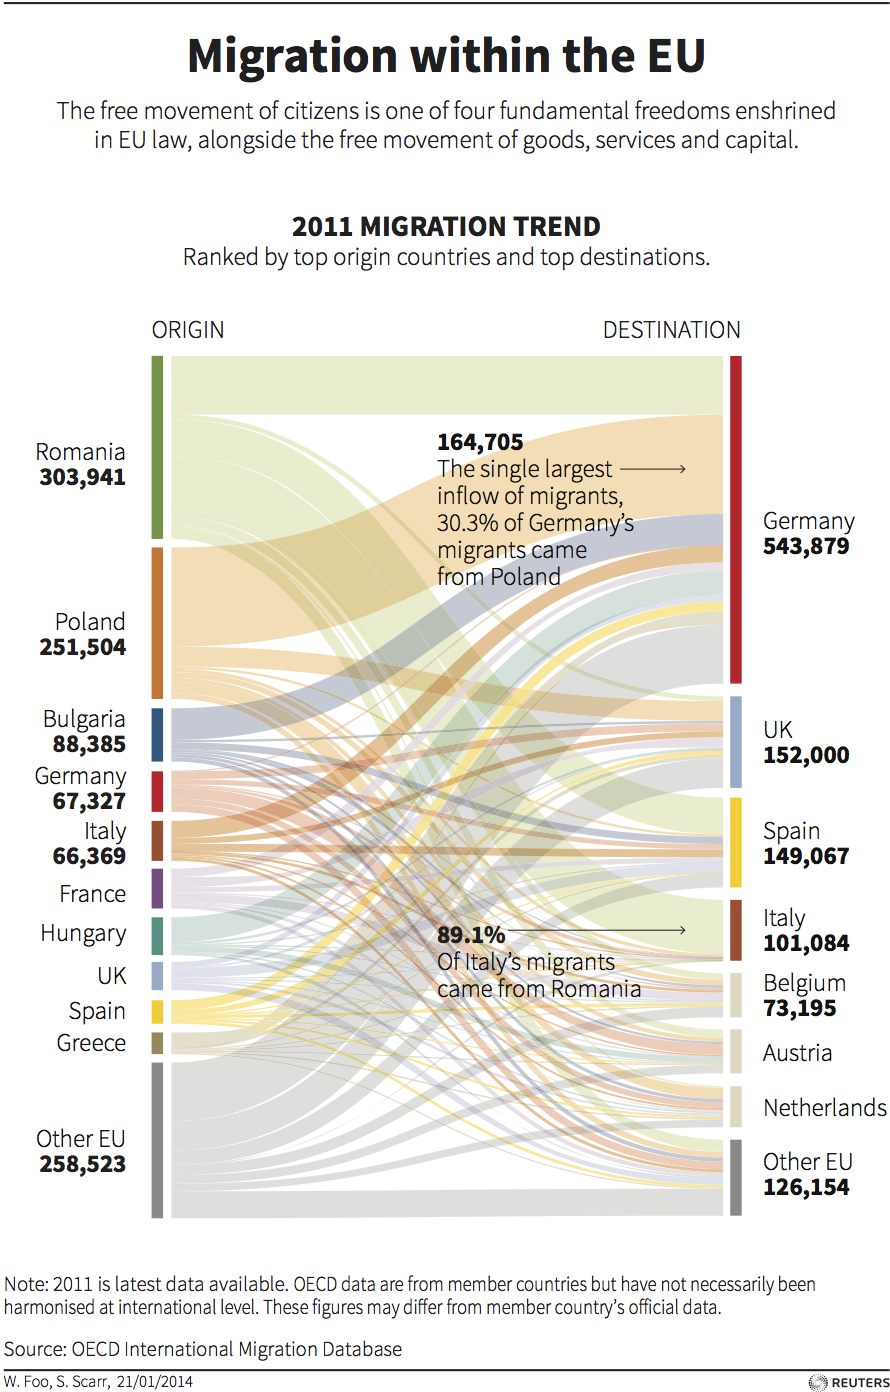 Migration within the EU